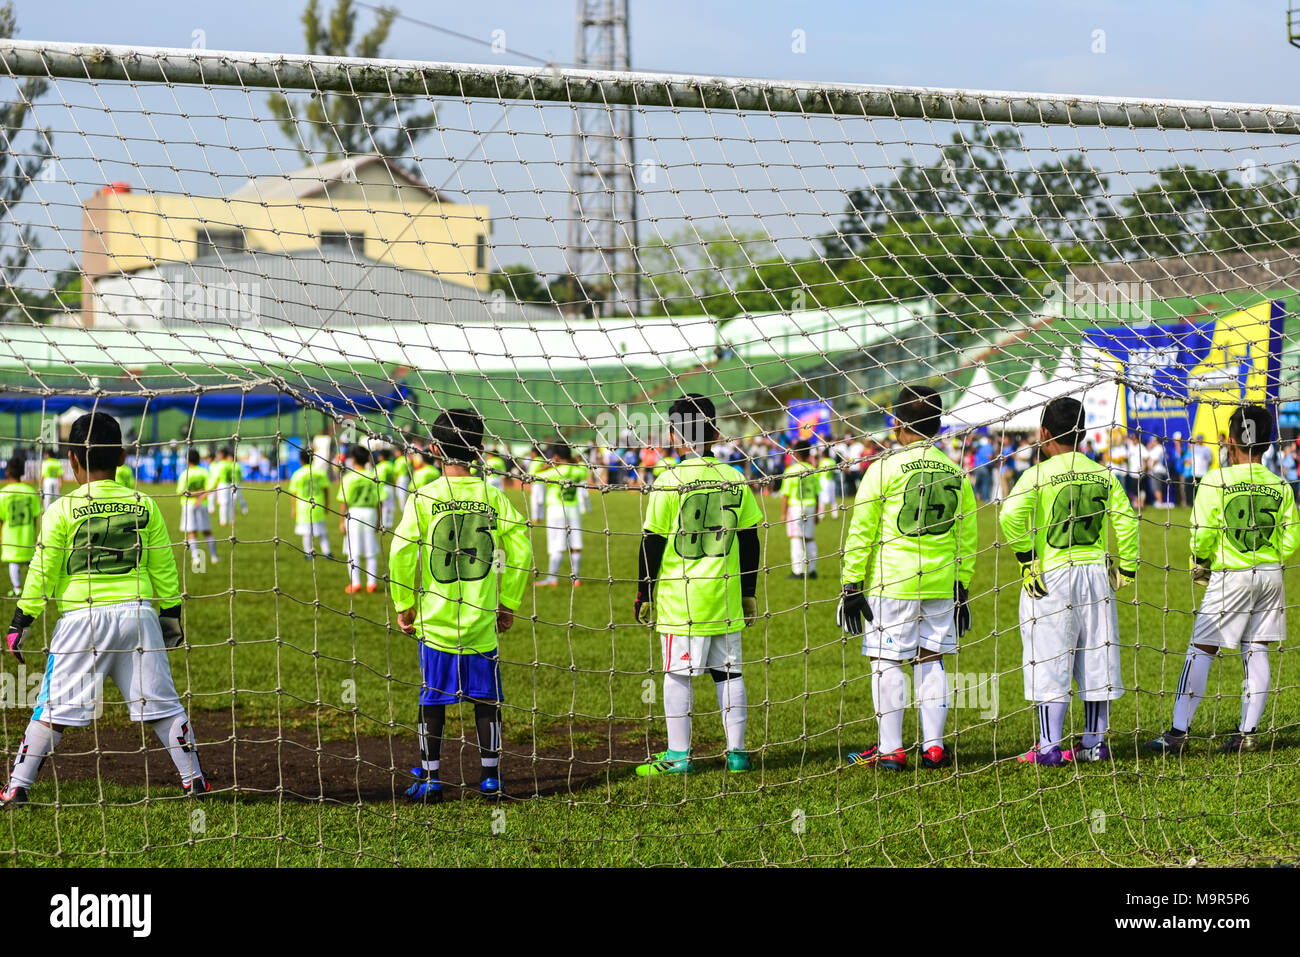 Six football academy trainees take the goalkeeper role in an exhibition match against Indonesian football club of Persib Bandung. Five players of Pers - Stock Image